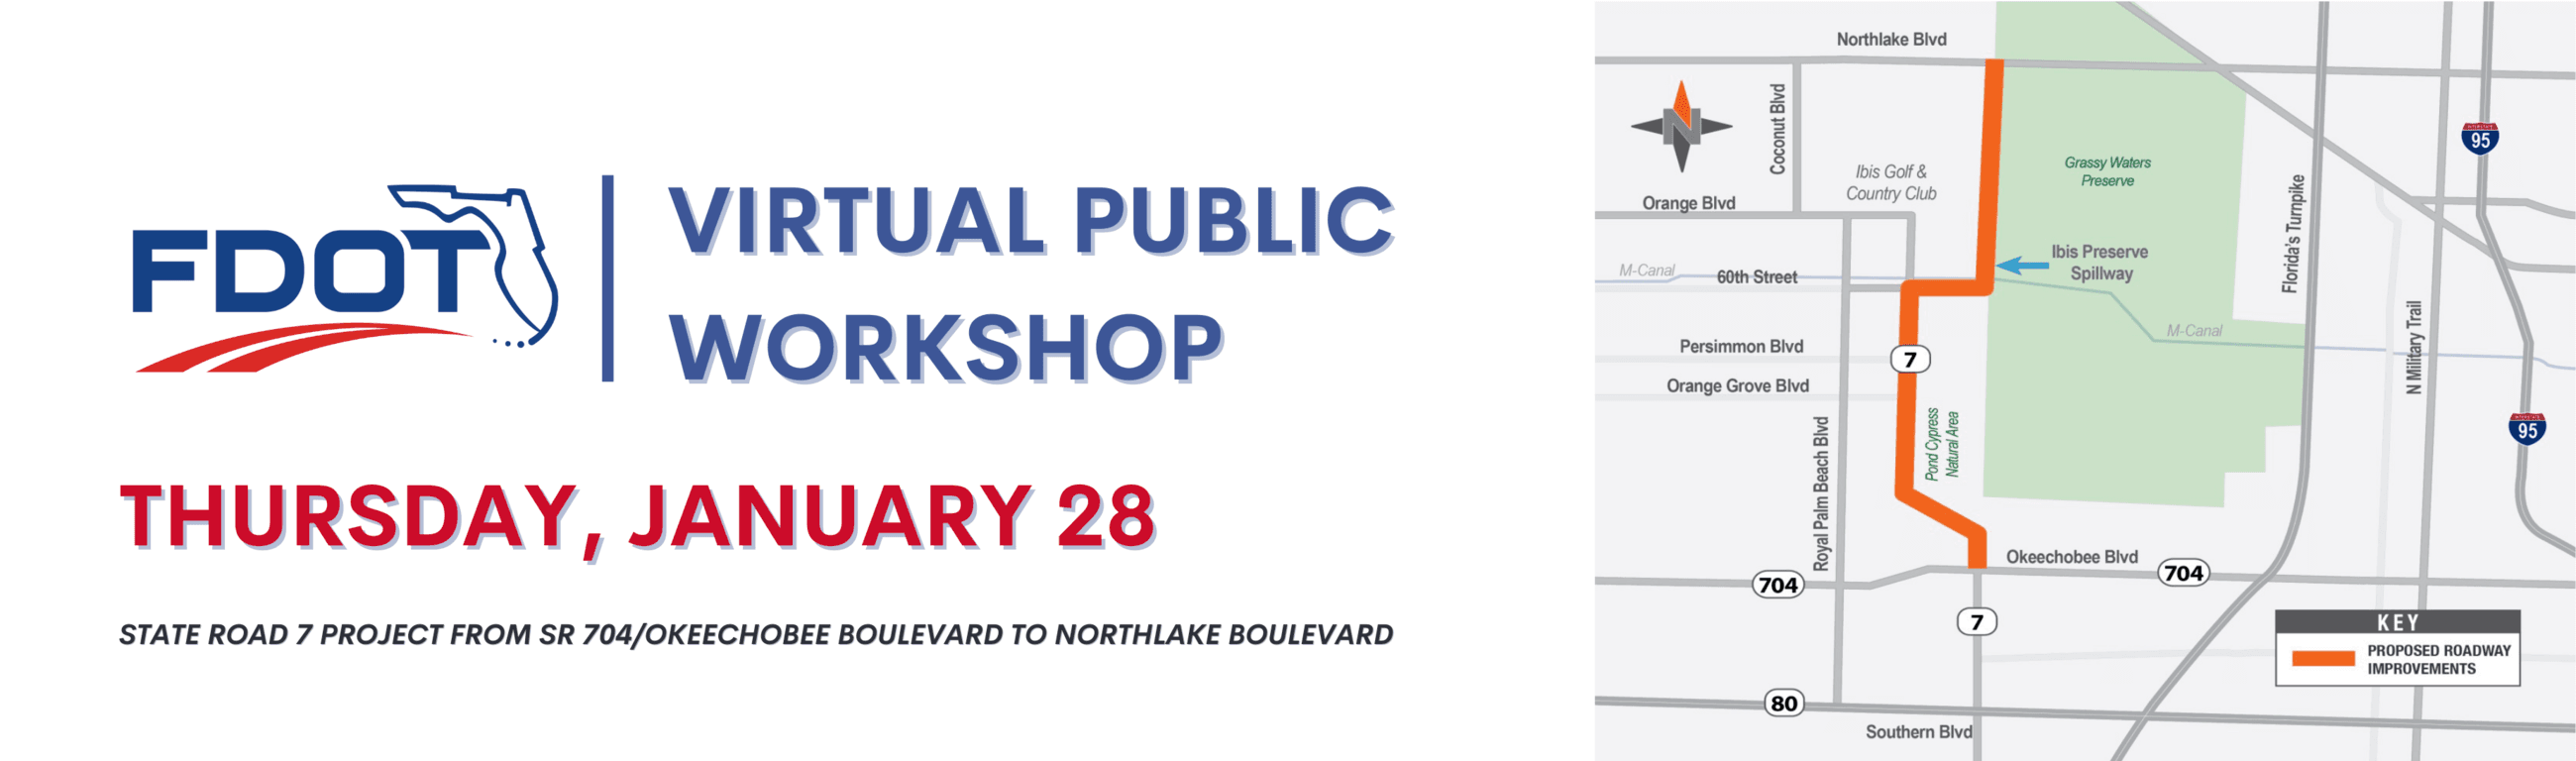 Virtual Public Workshop